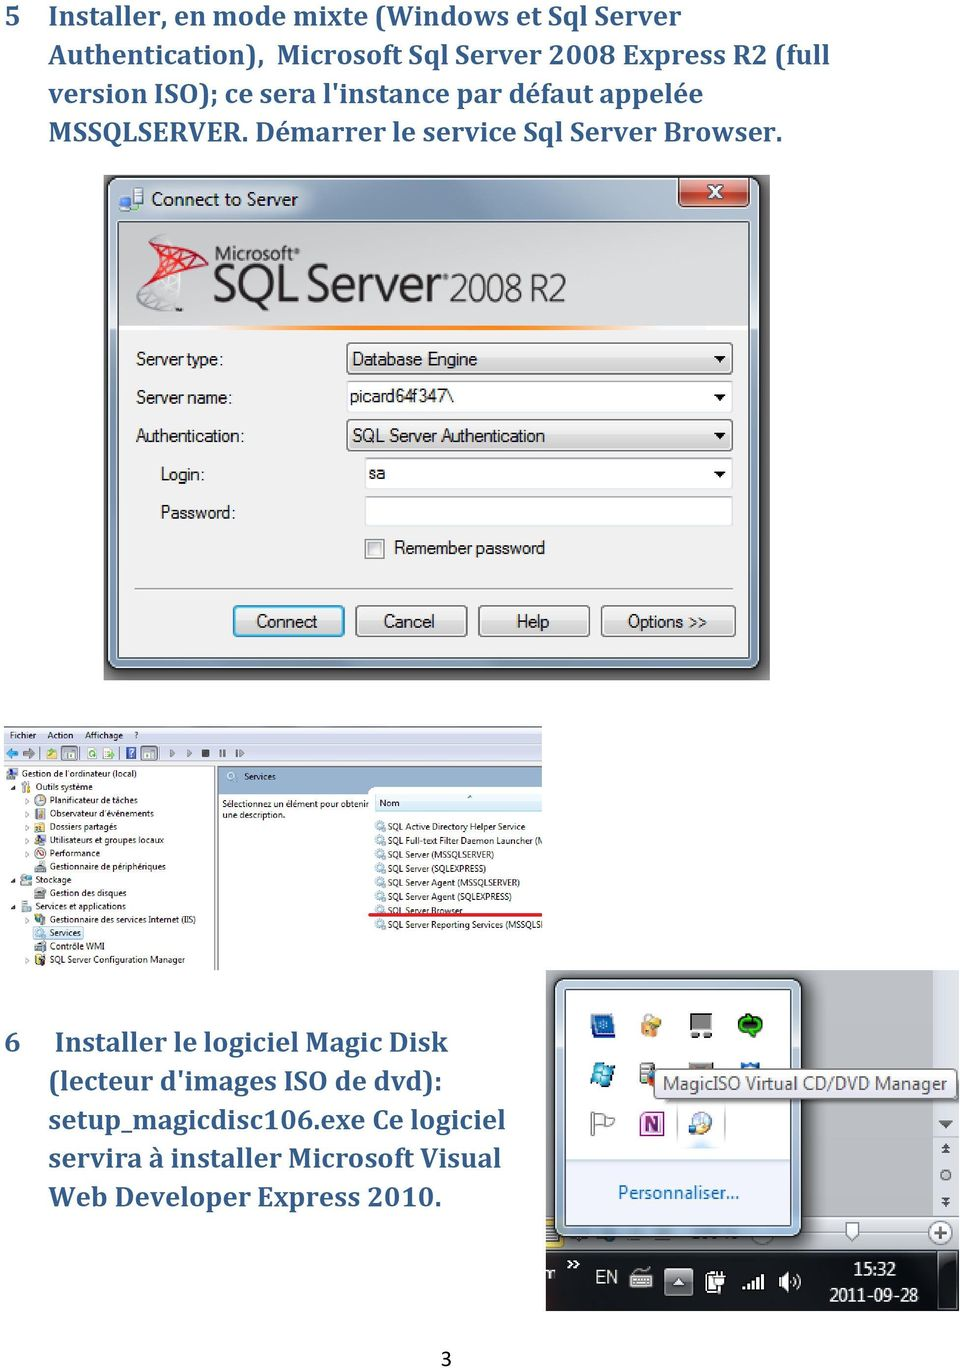 Démarrer le service Sql Server Browser.